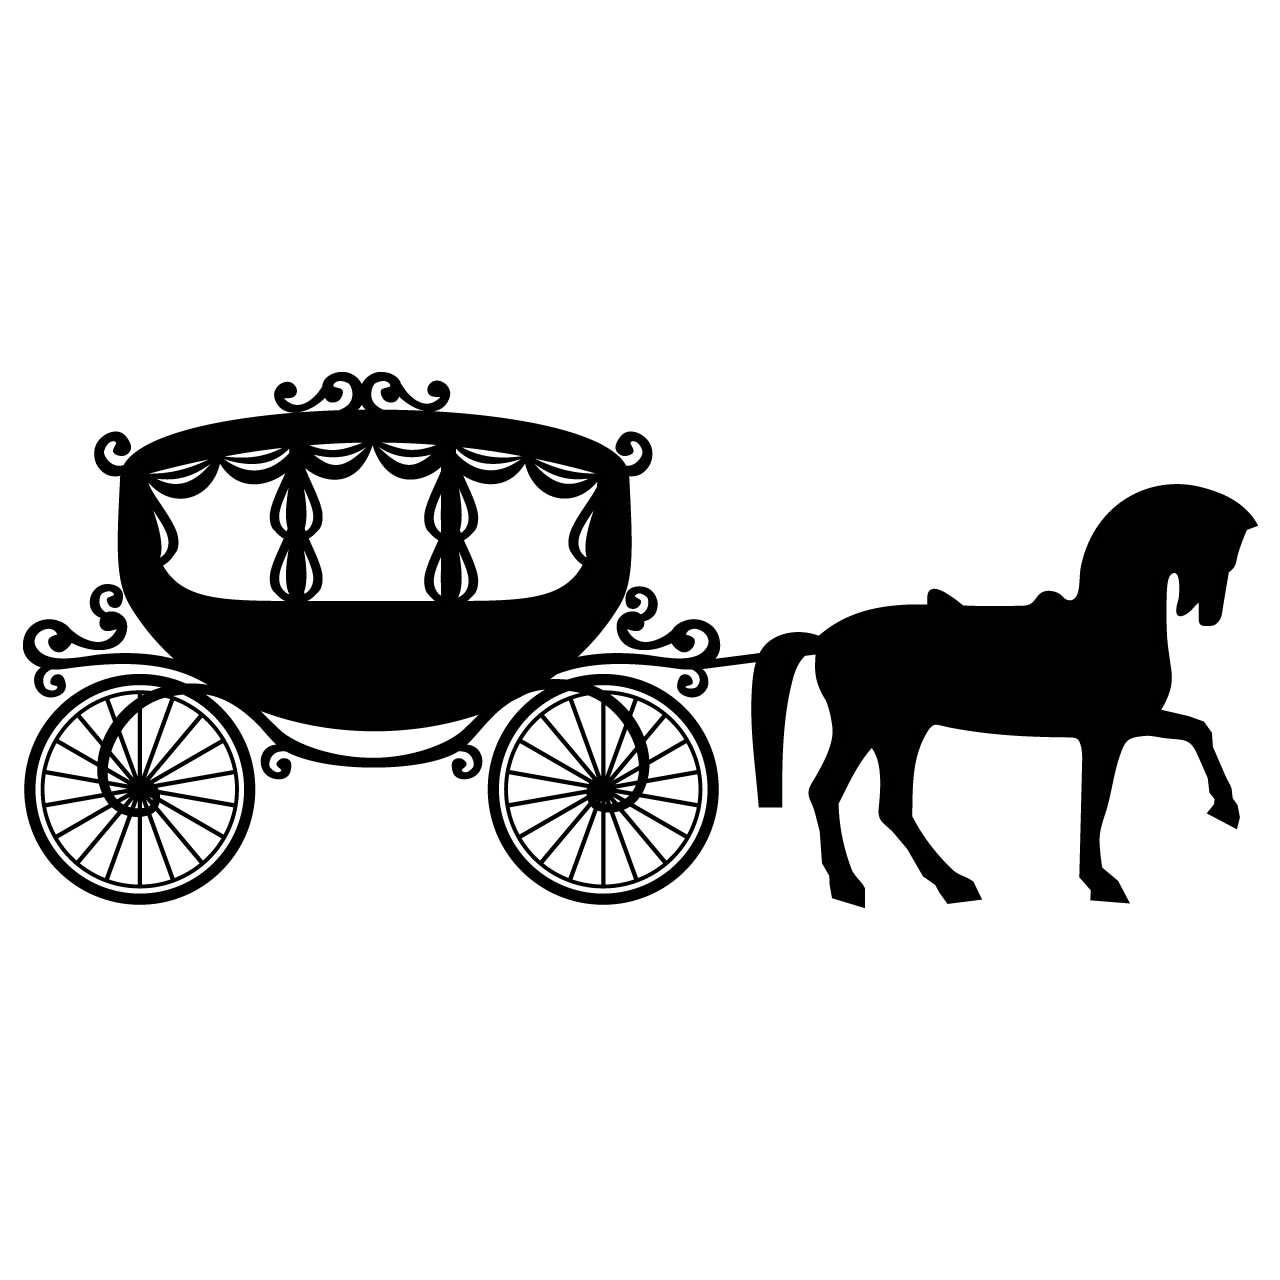 Victorian horse and carriage clipart banner freeuse stock Free Horse And Carriage Clipart, Download Free Clip Art ... banner freeuse stock